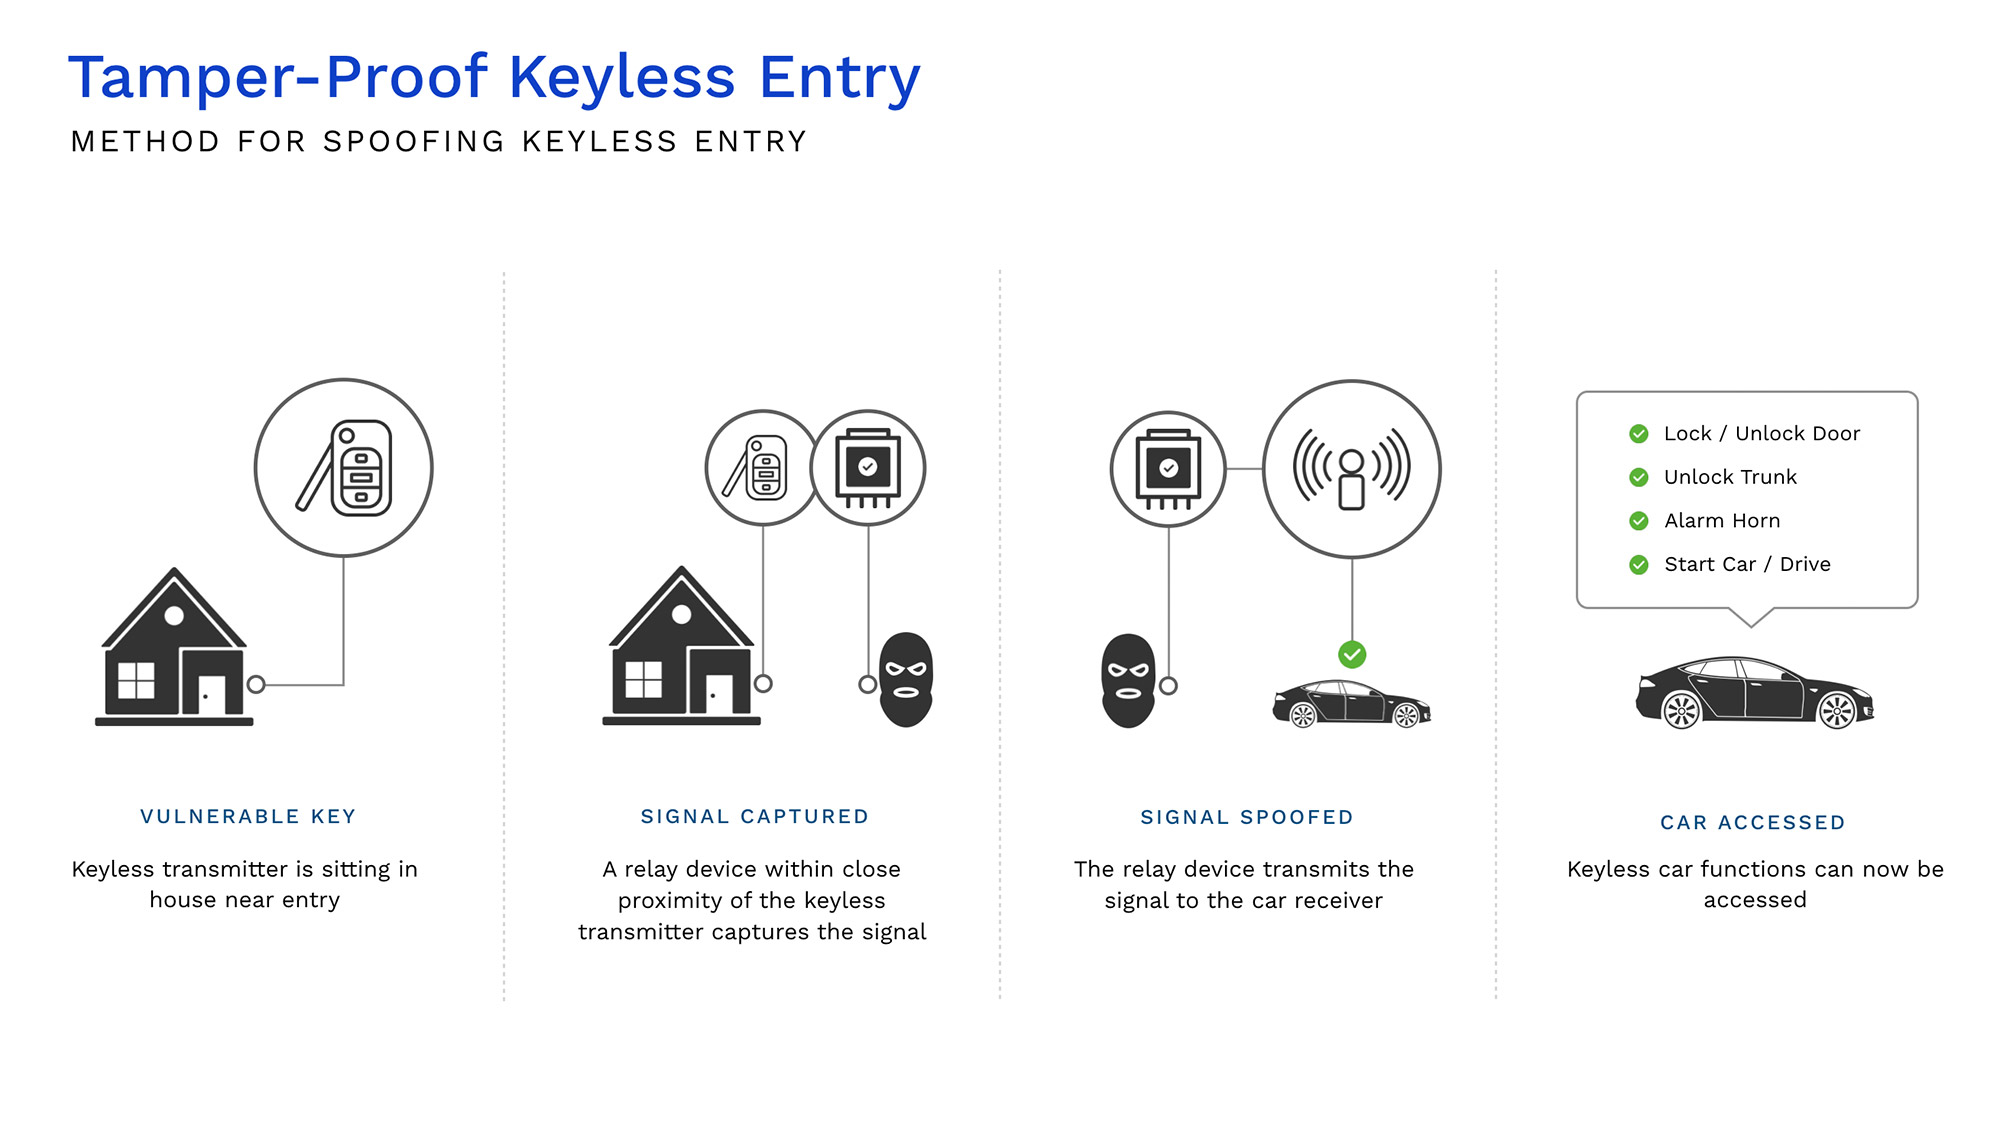 Tamper Proof Keyless Entry - 3